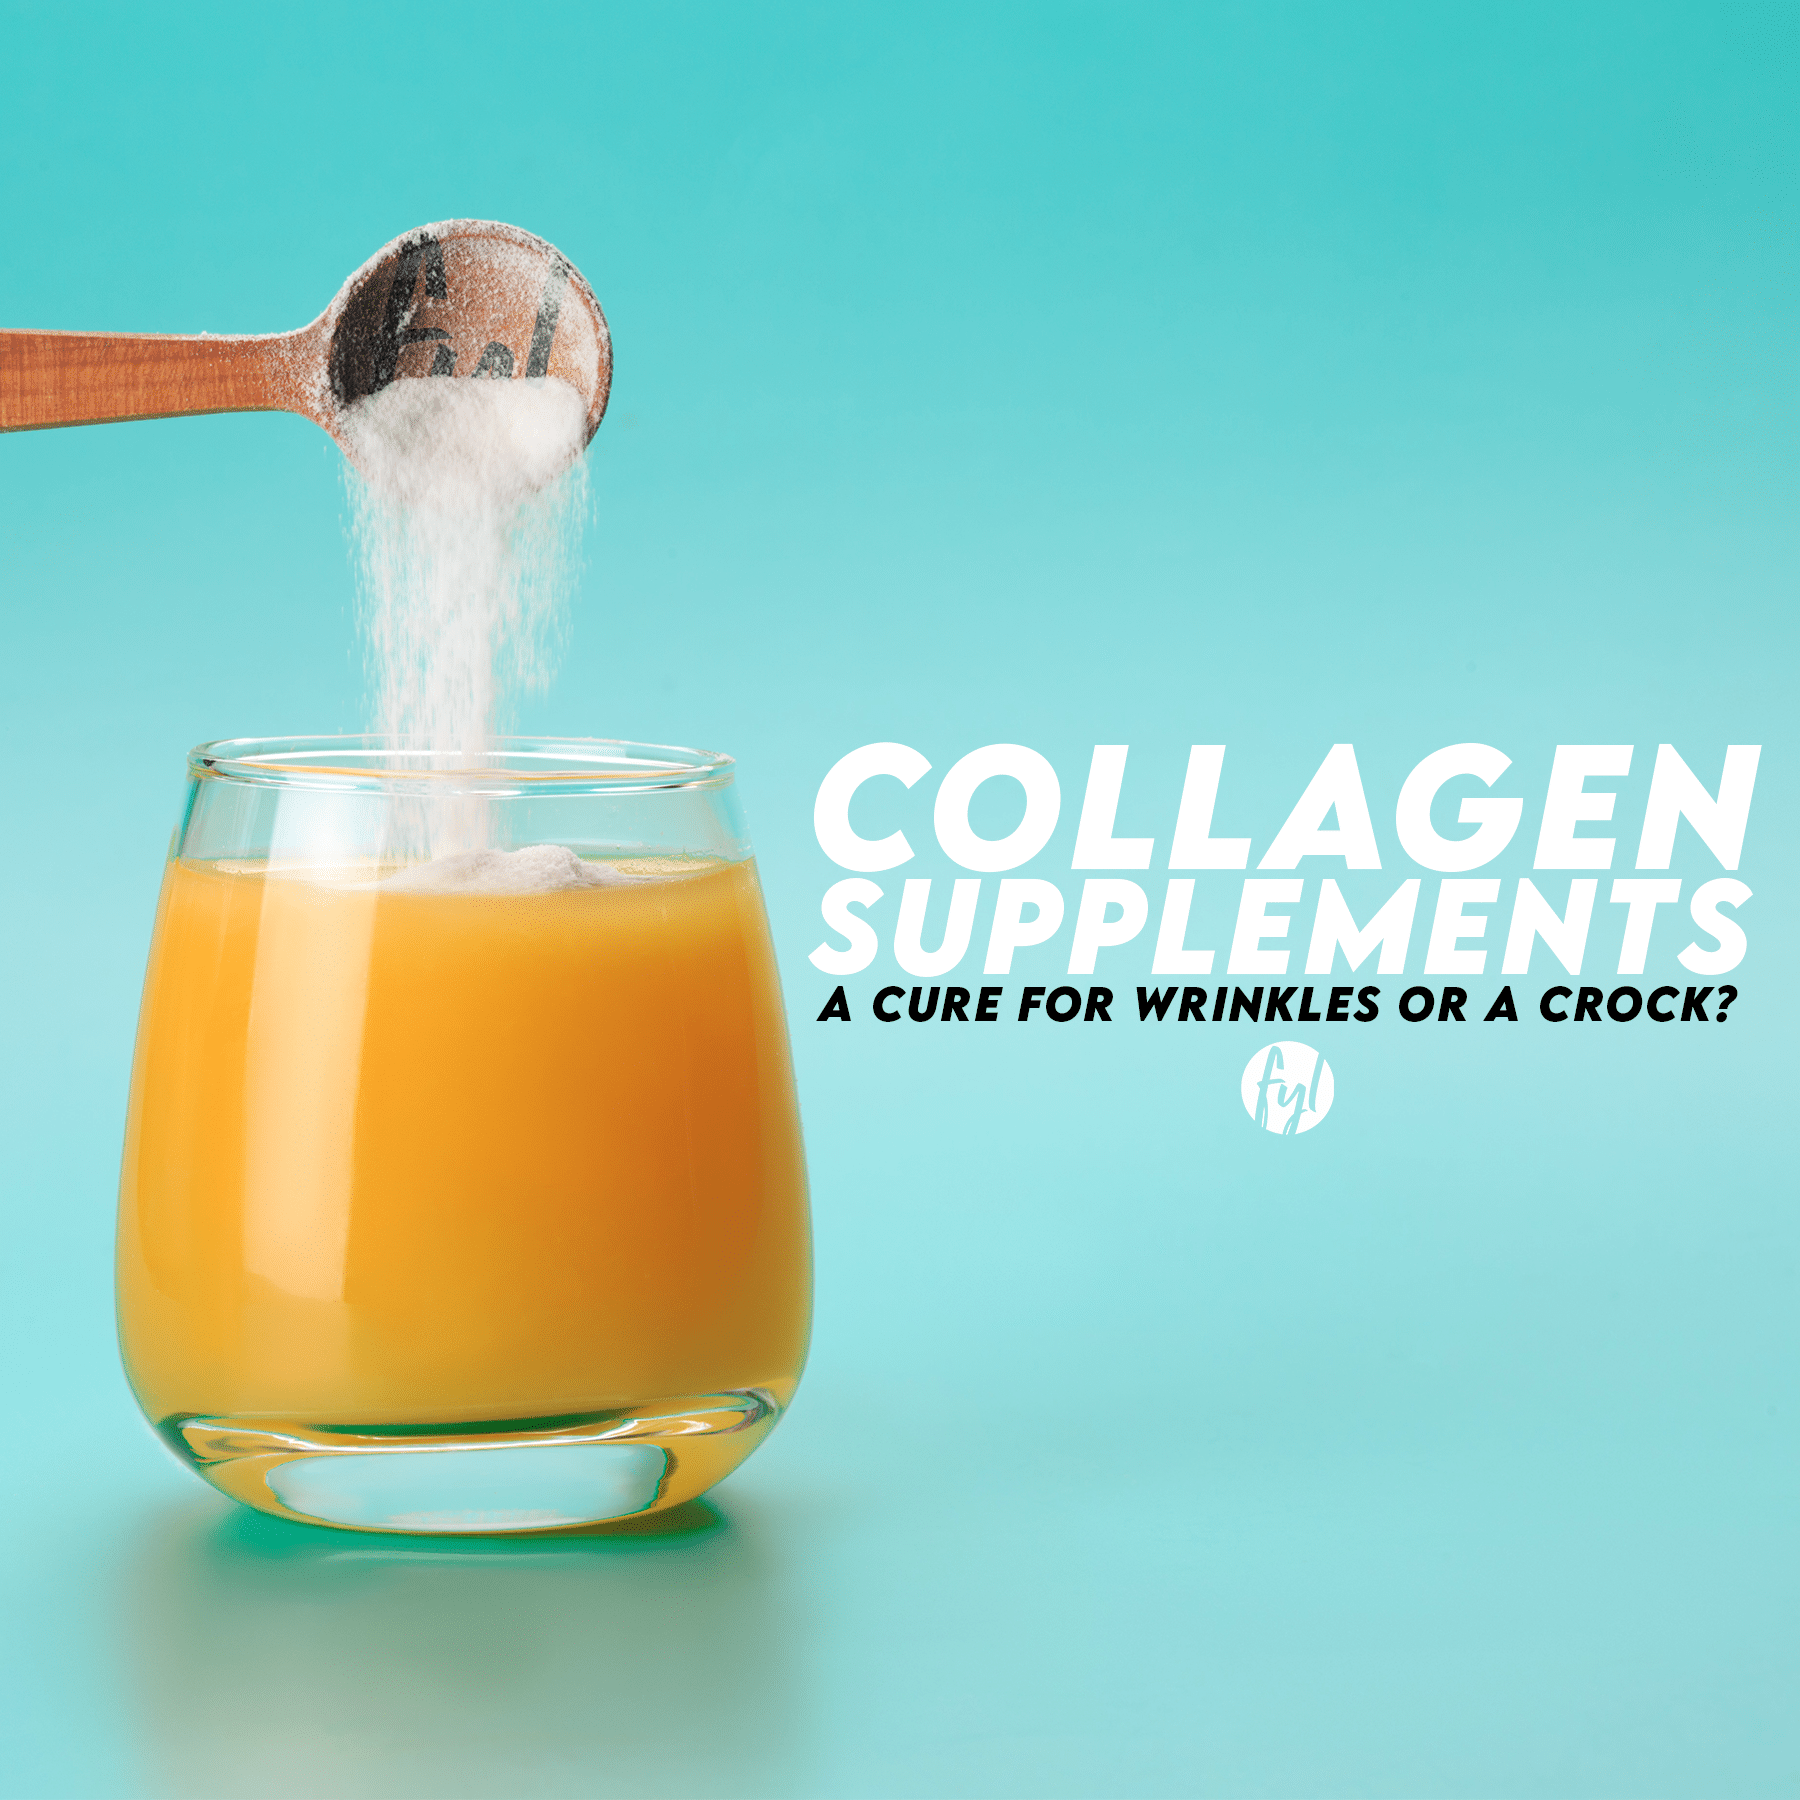 Collagen Supplements: A Cure For Wrinkles or a Crock?